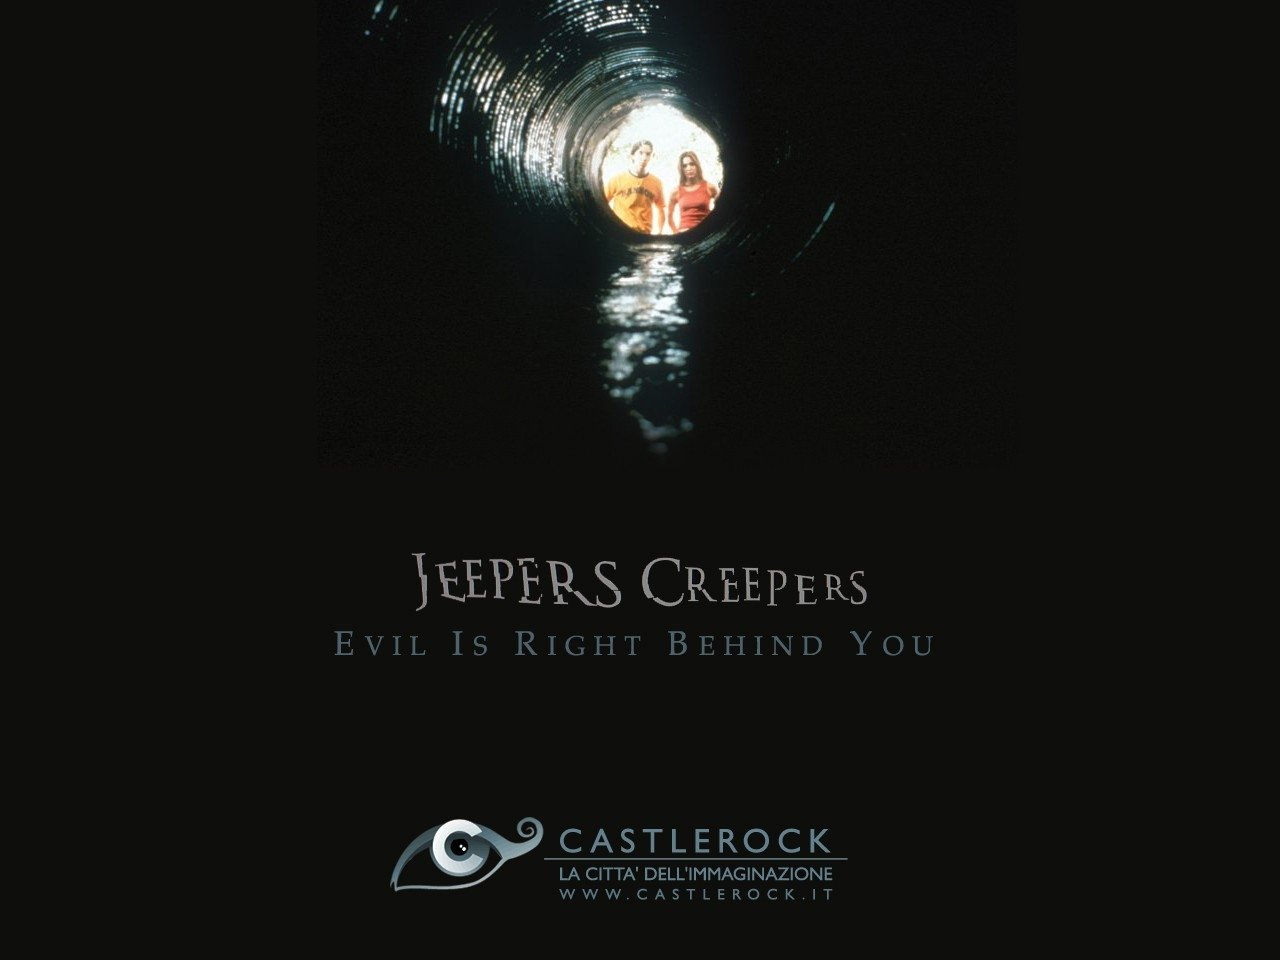 Wallpaper del film Jeepers Creepers - Il canto del diavolo